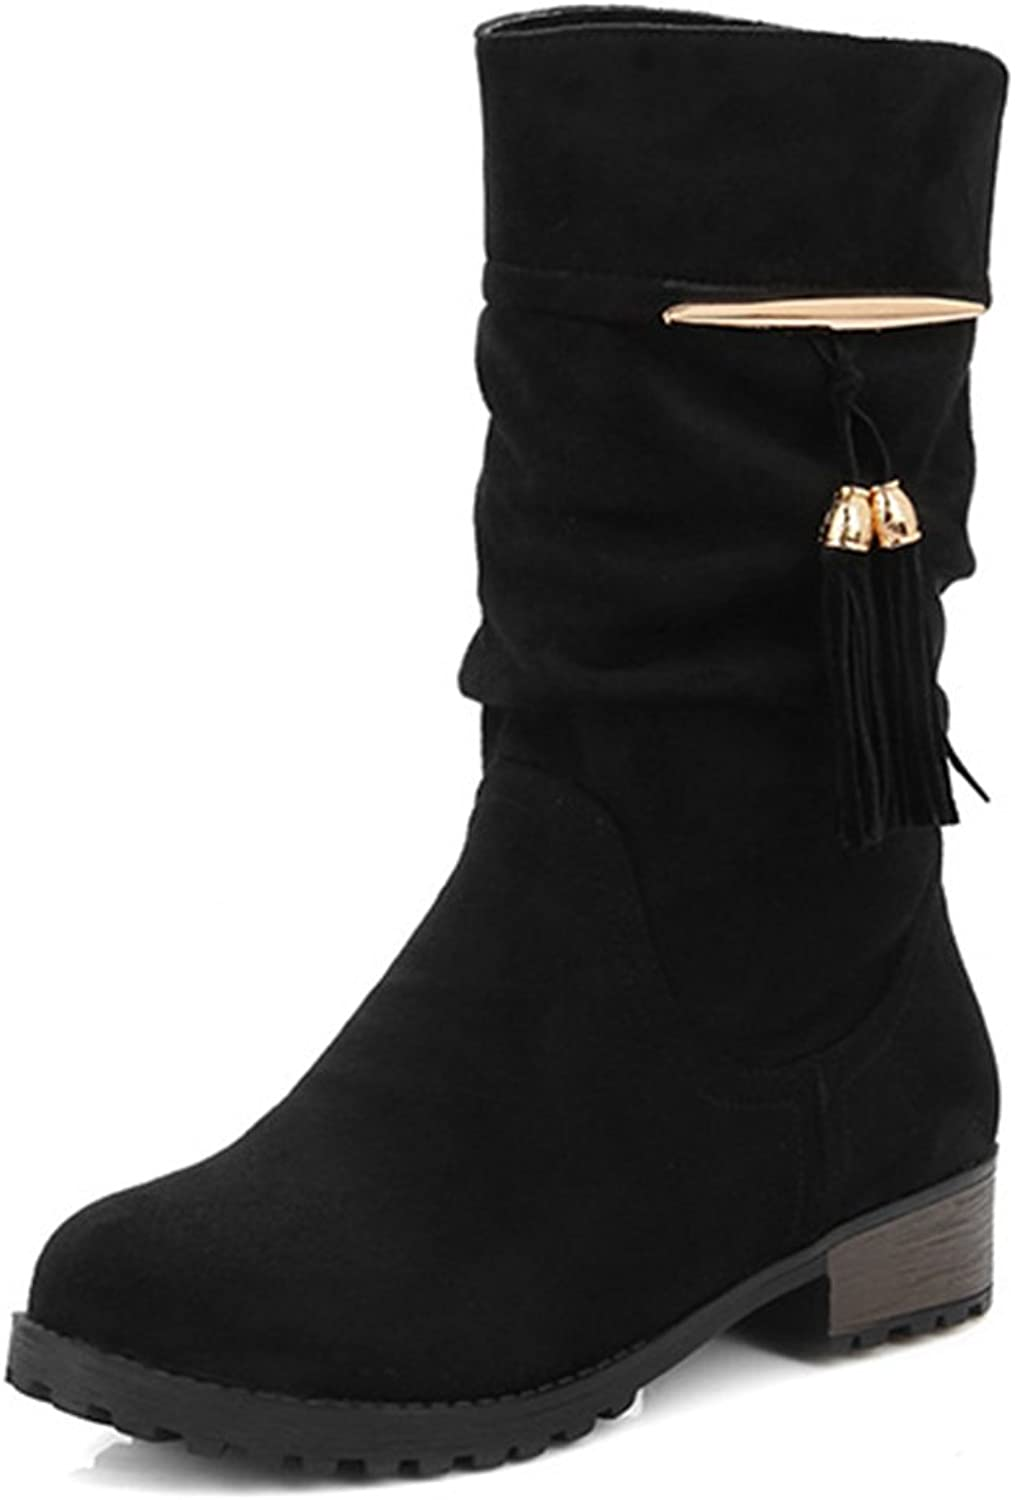 IDIFU Women's Casual Tassels Low Heels Chunky Round Toe Slouchy Mid Calf Boots